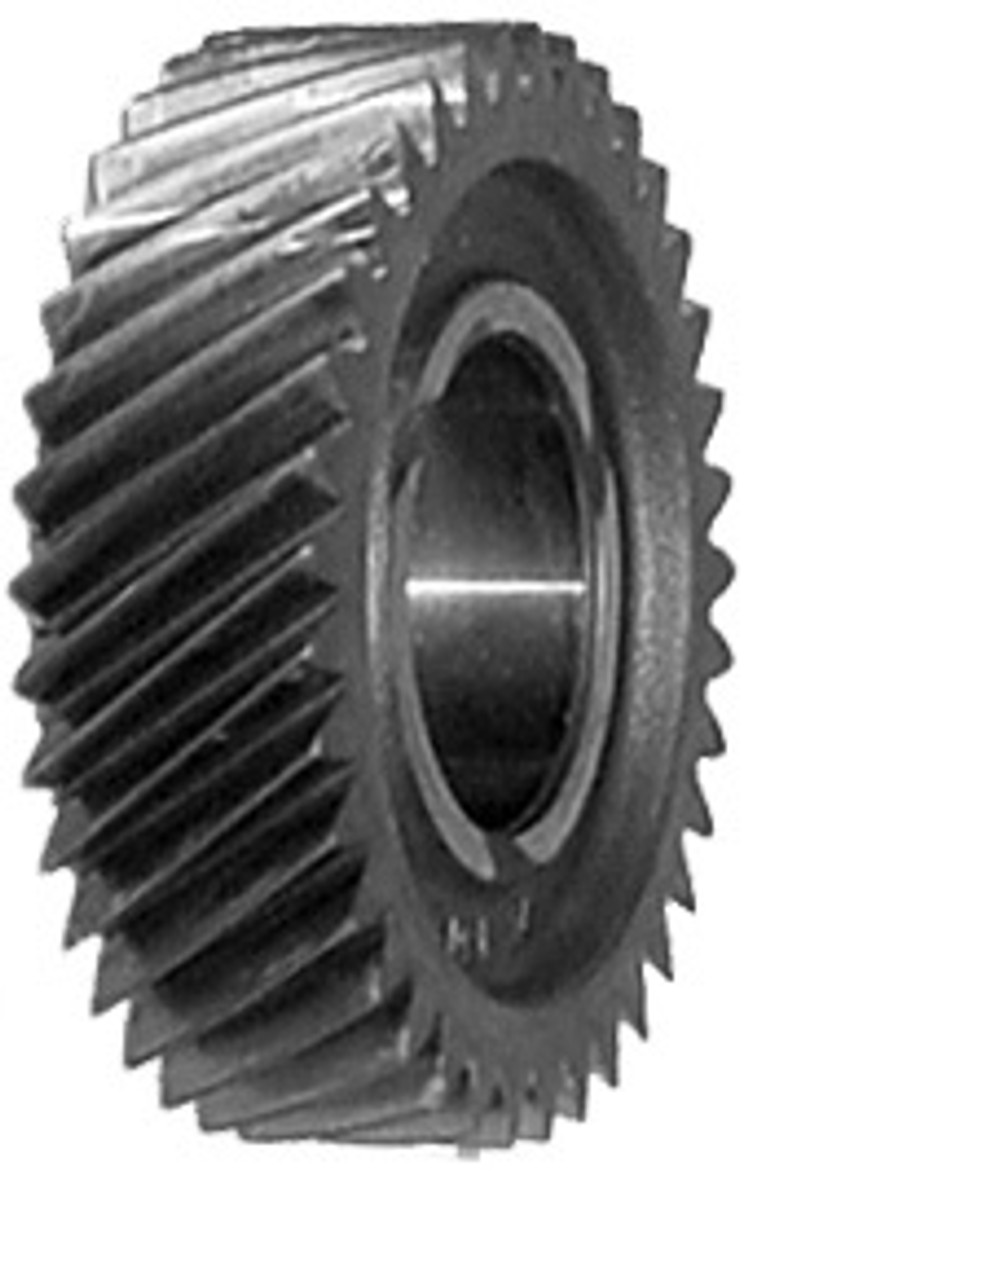 Ford GM ZF 6 speed transmission S-650 37 tooth reverse gear